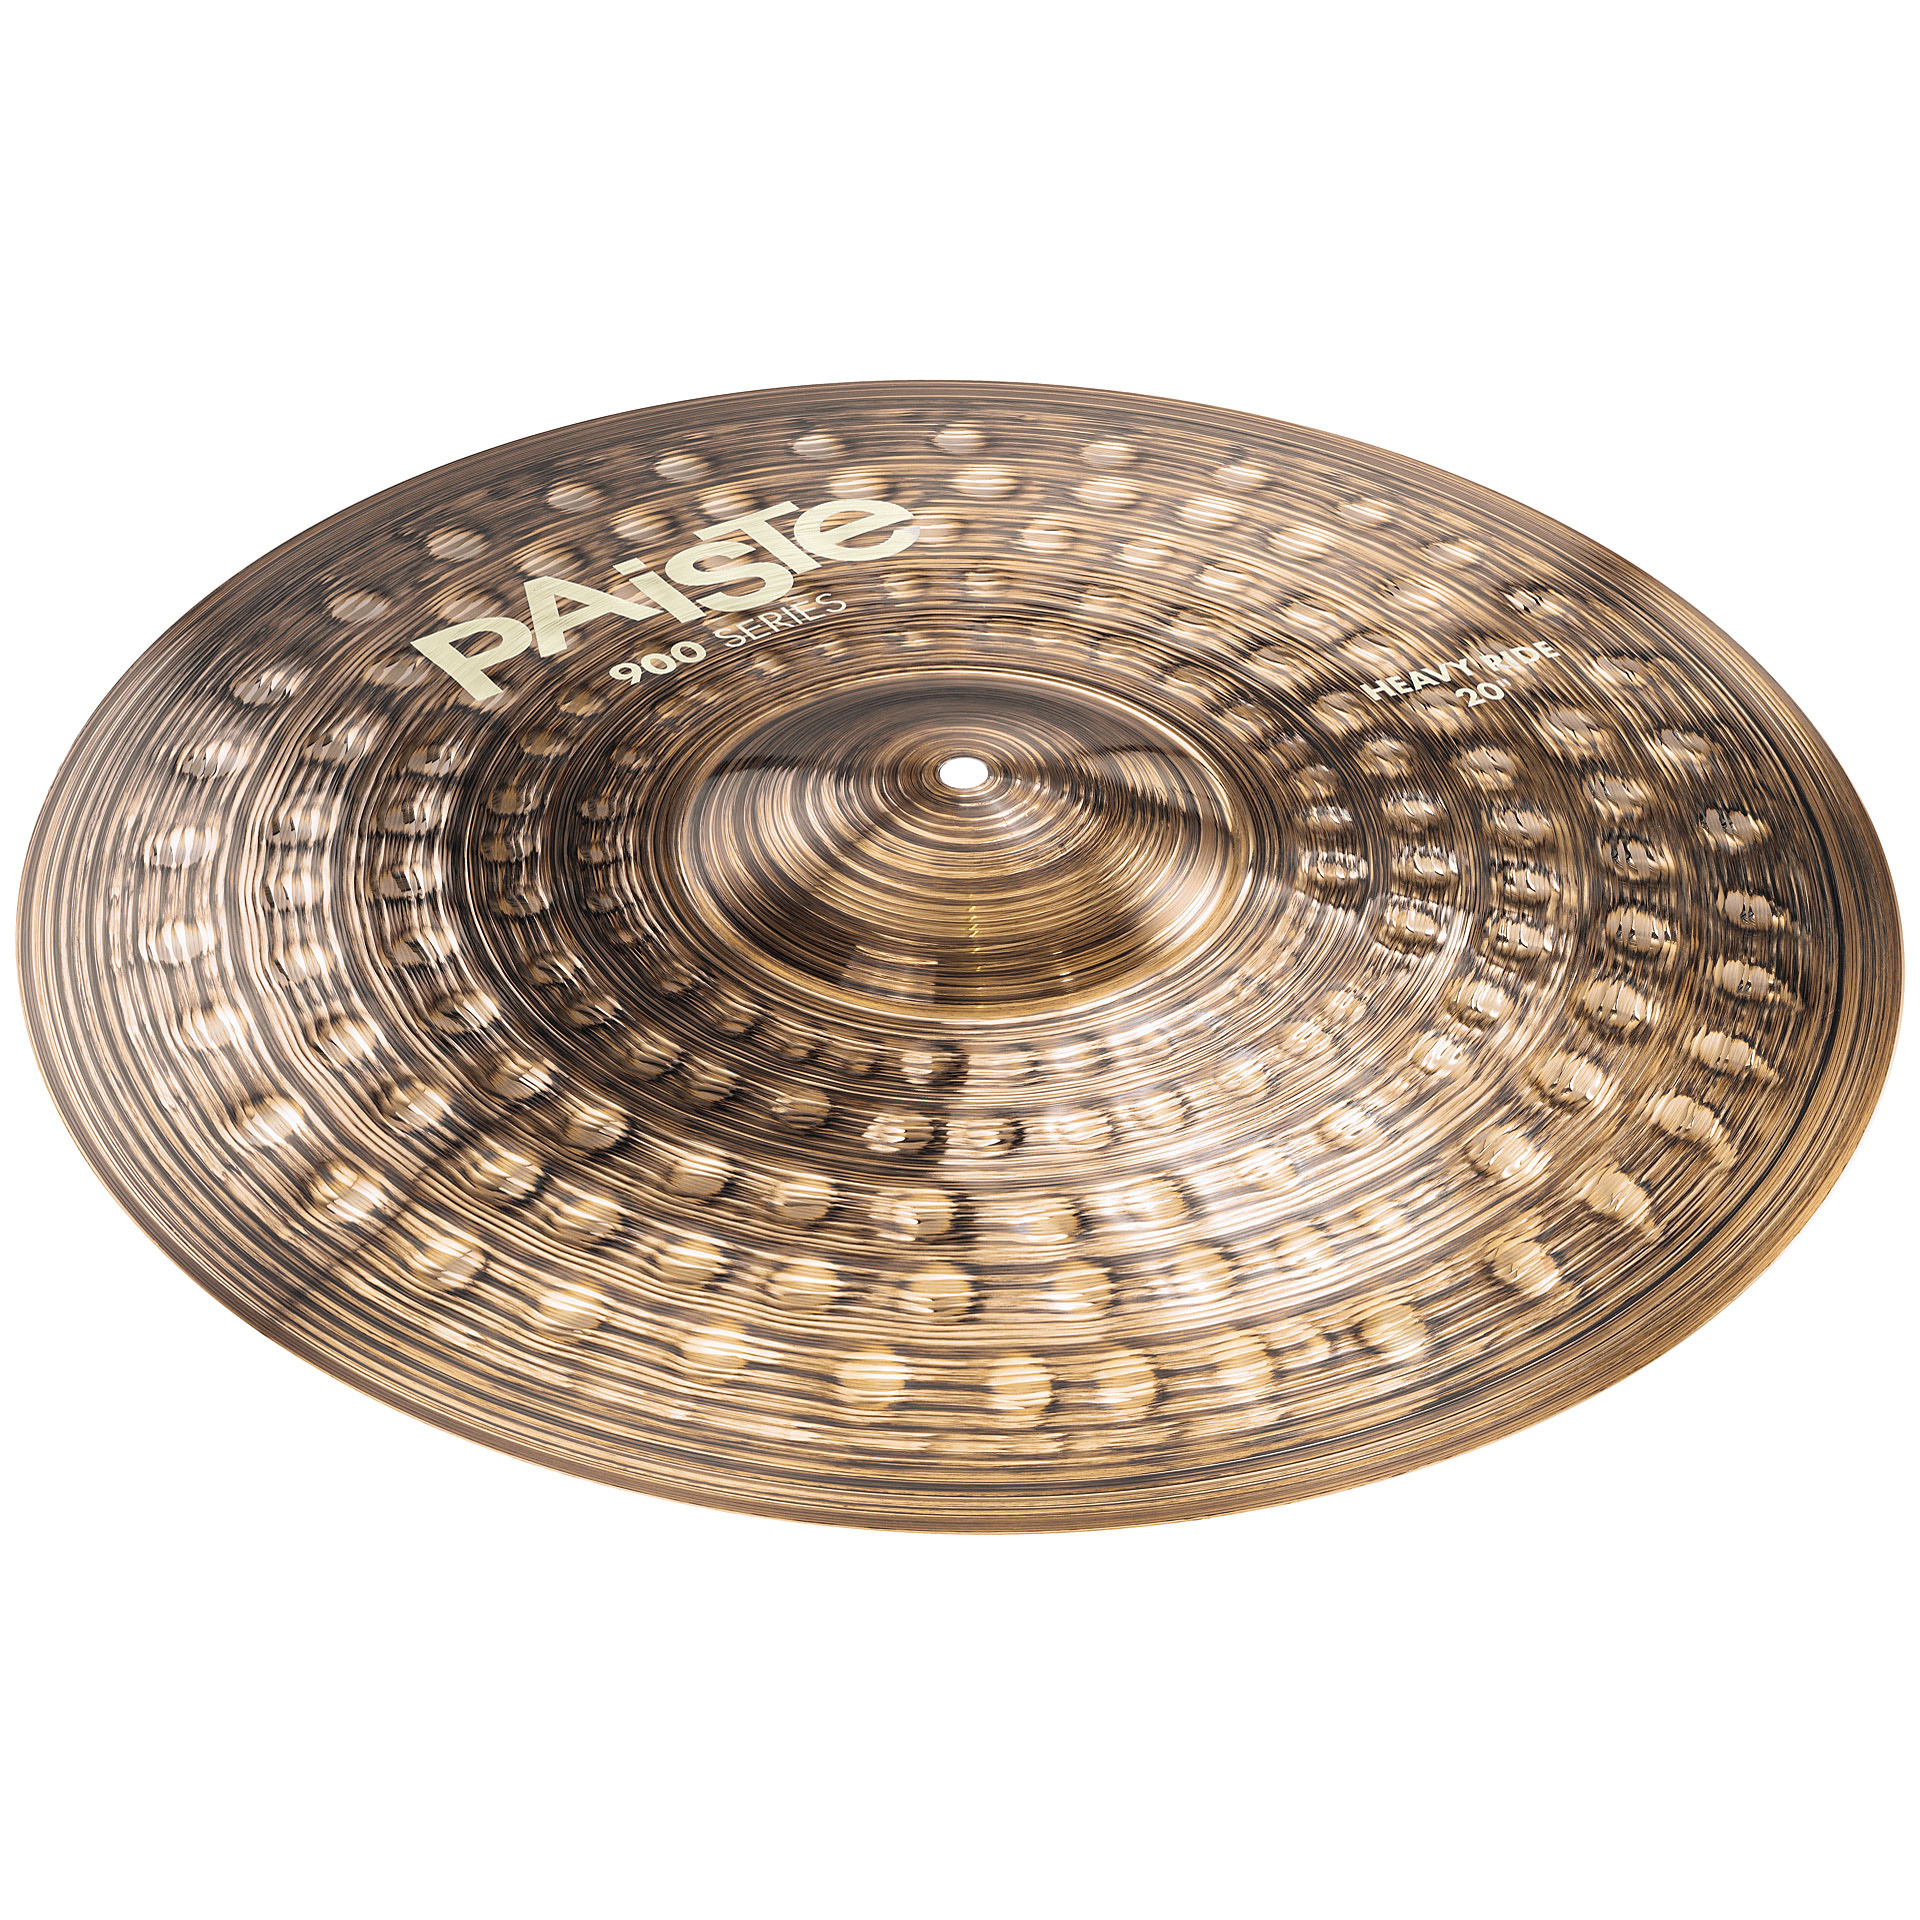 Paiste 900S 20 Heavy Ride Ударные инструменты